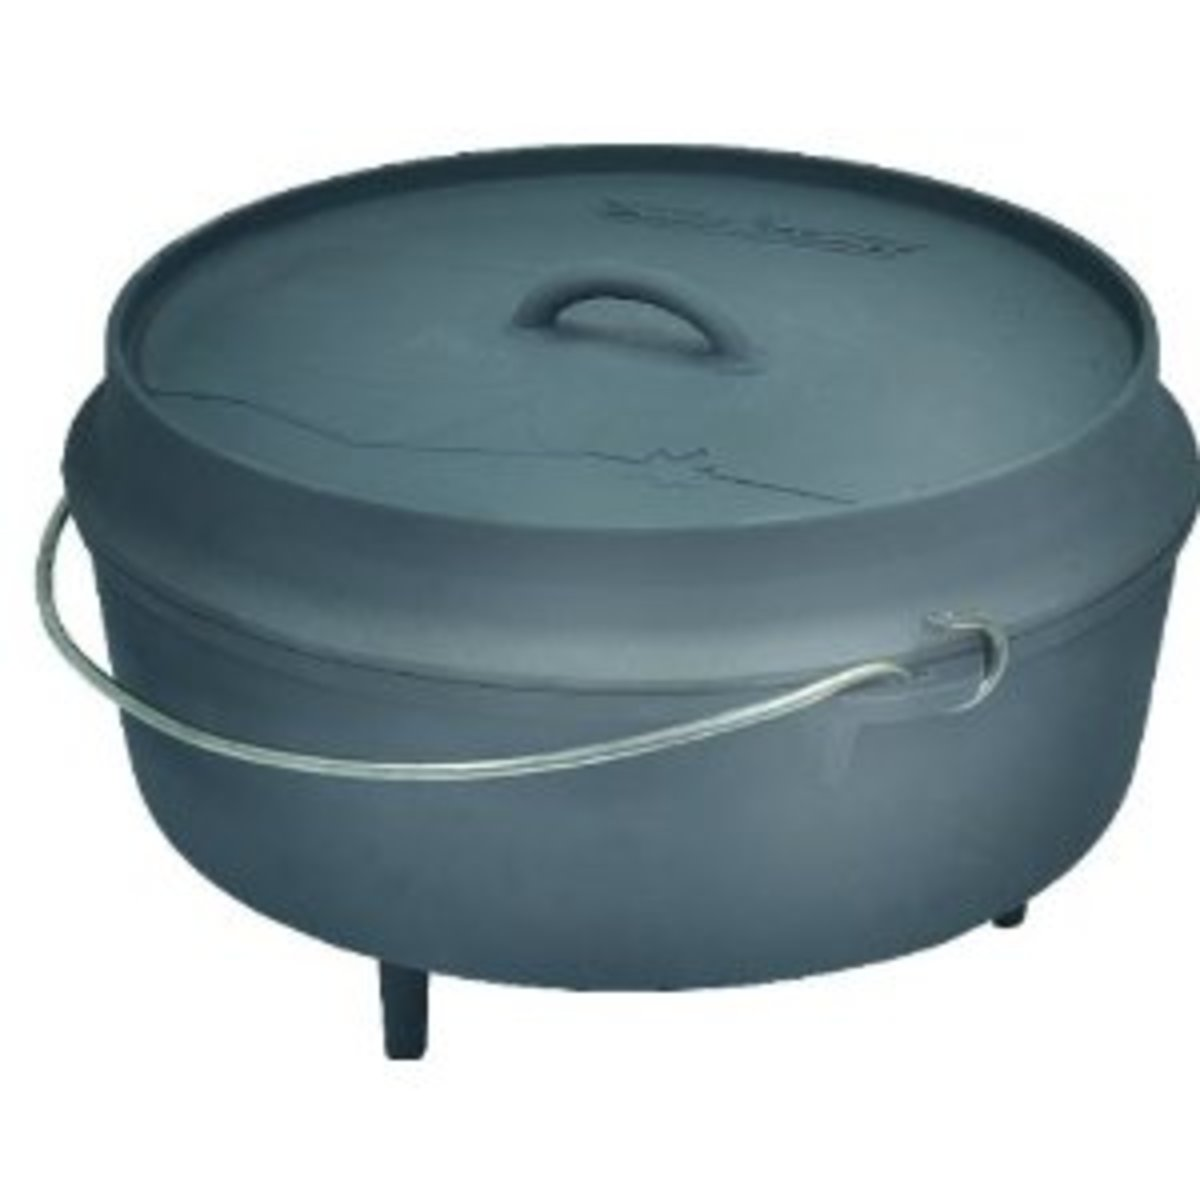 Camp Chef Aluminum Dutch Oven